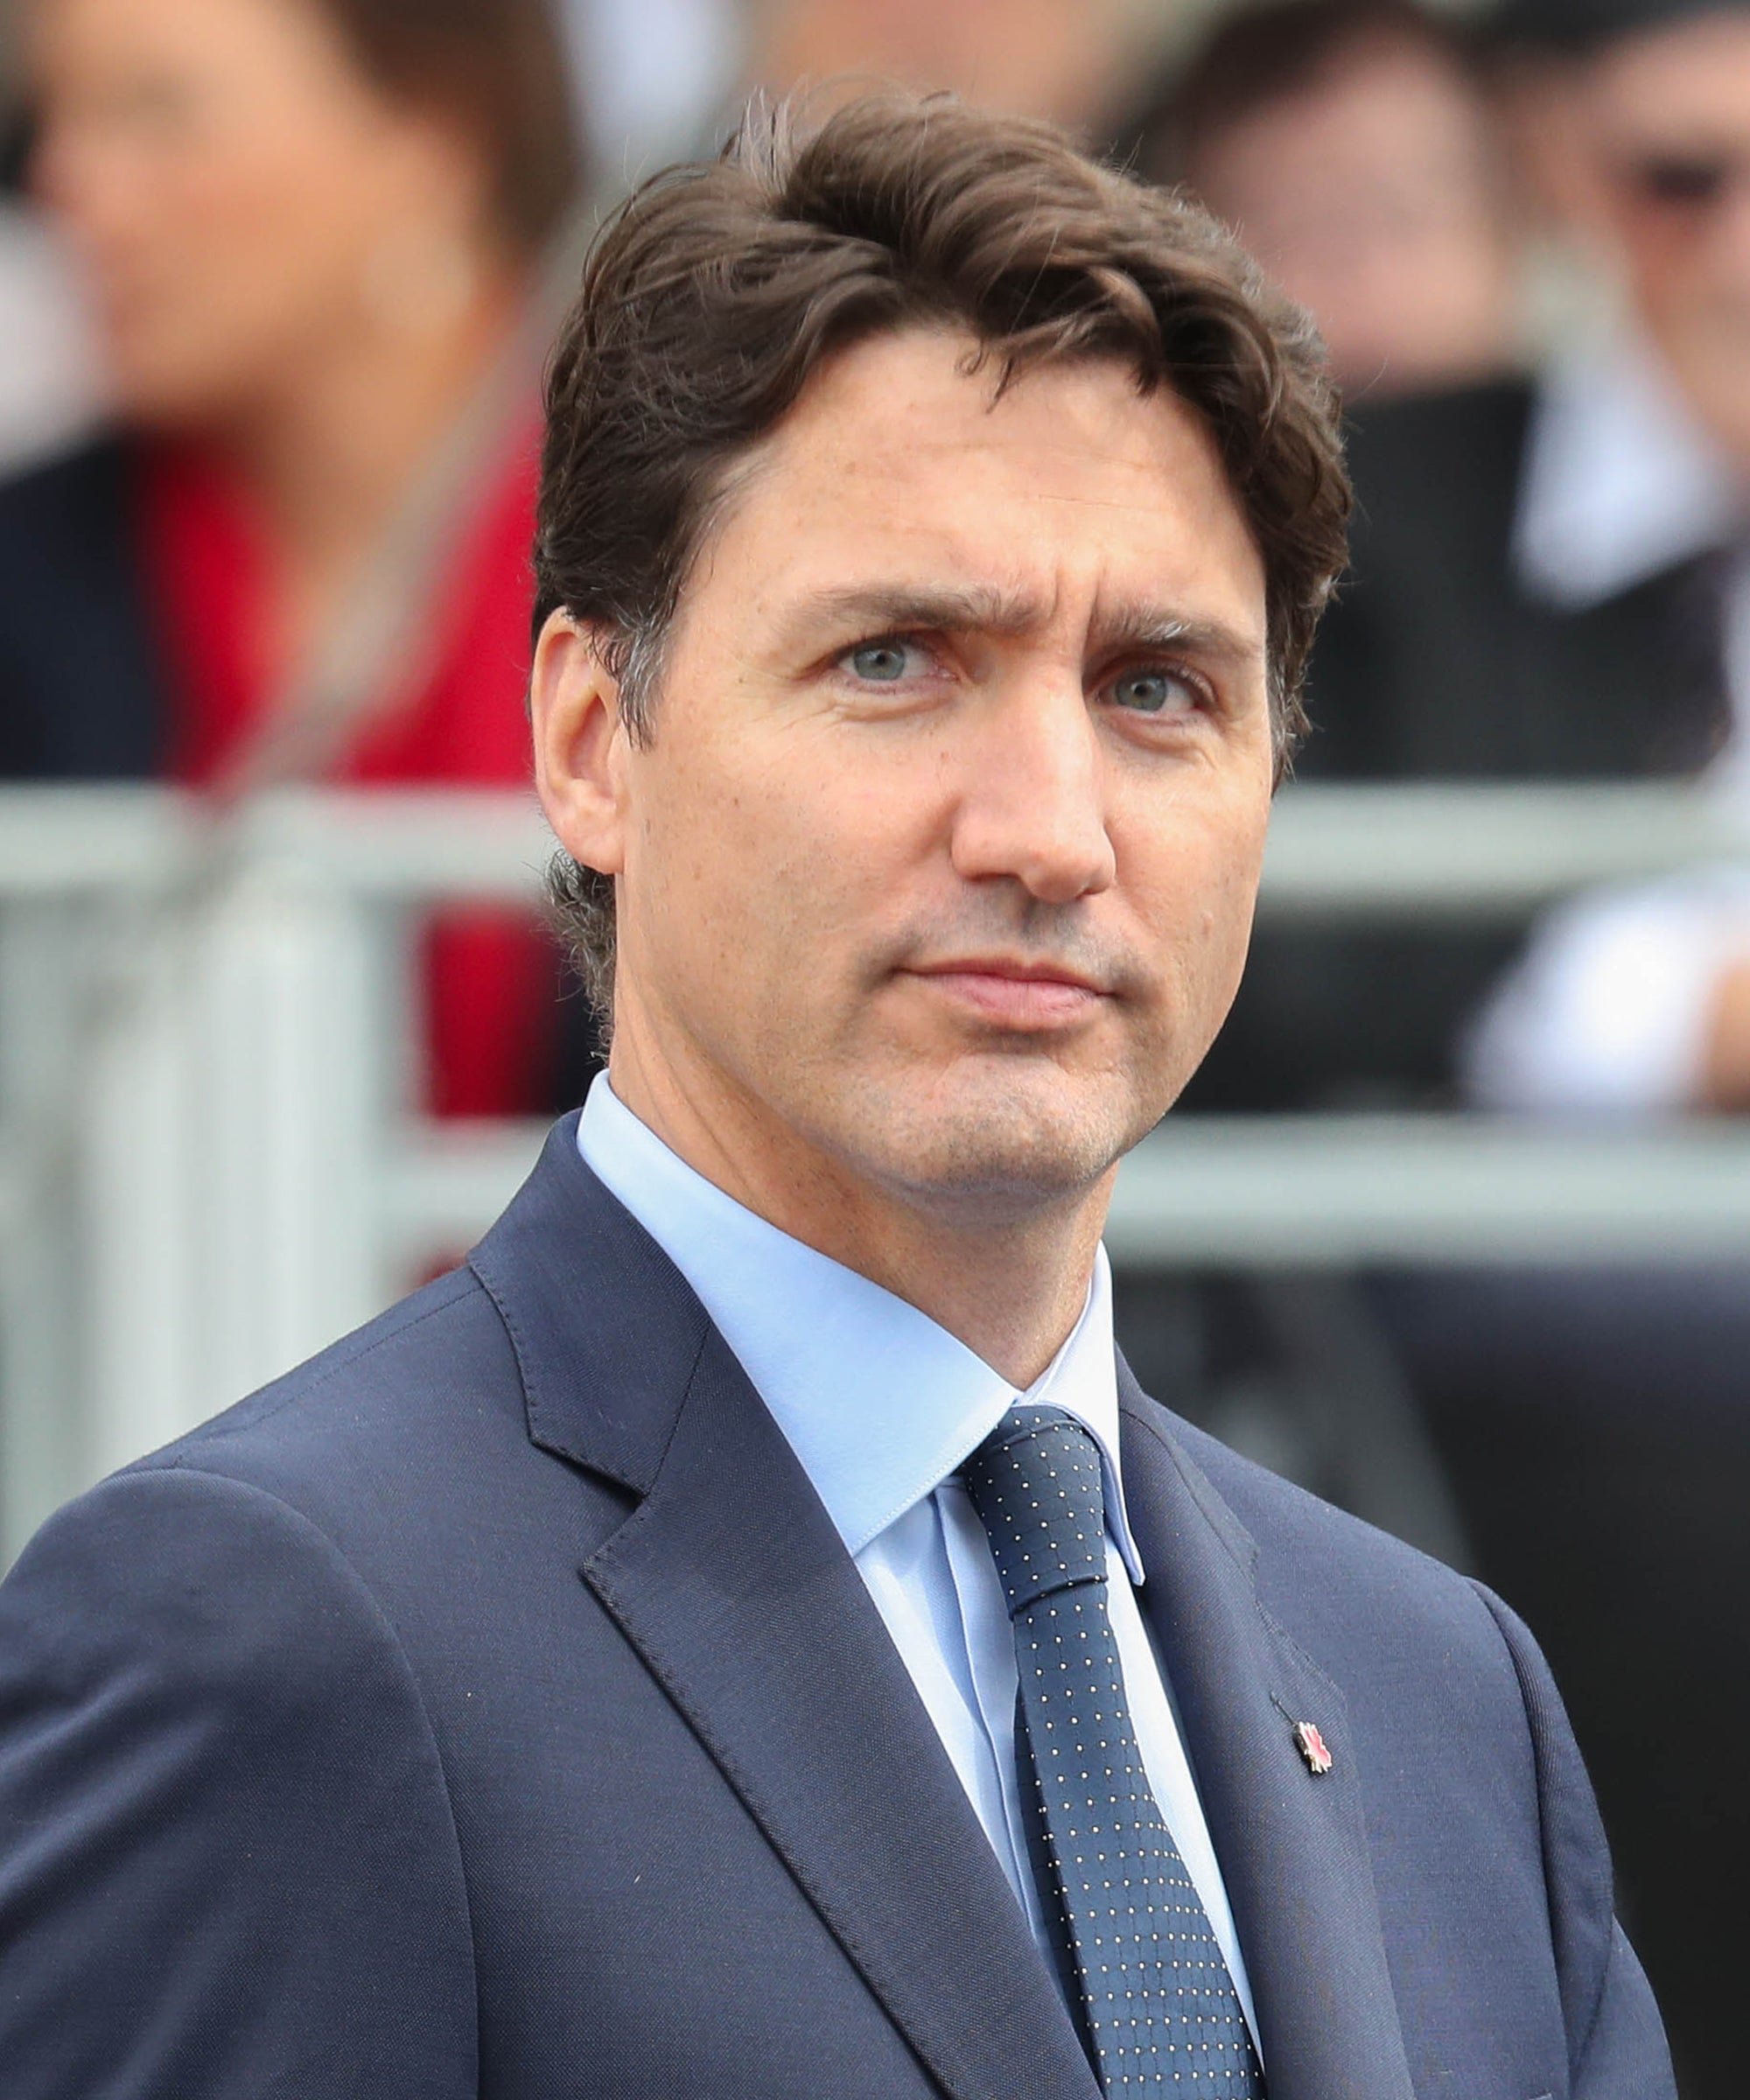 Justin Trudeau's Blackface Photos Aren't Surprising —They Show Us Who He's Always Been